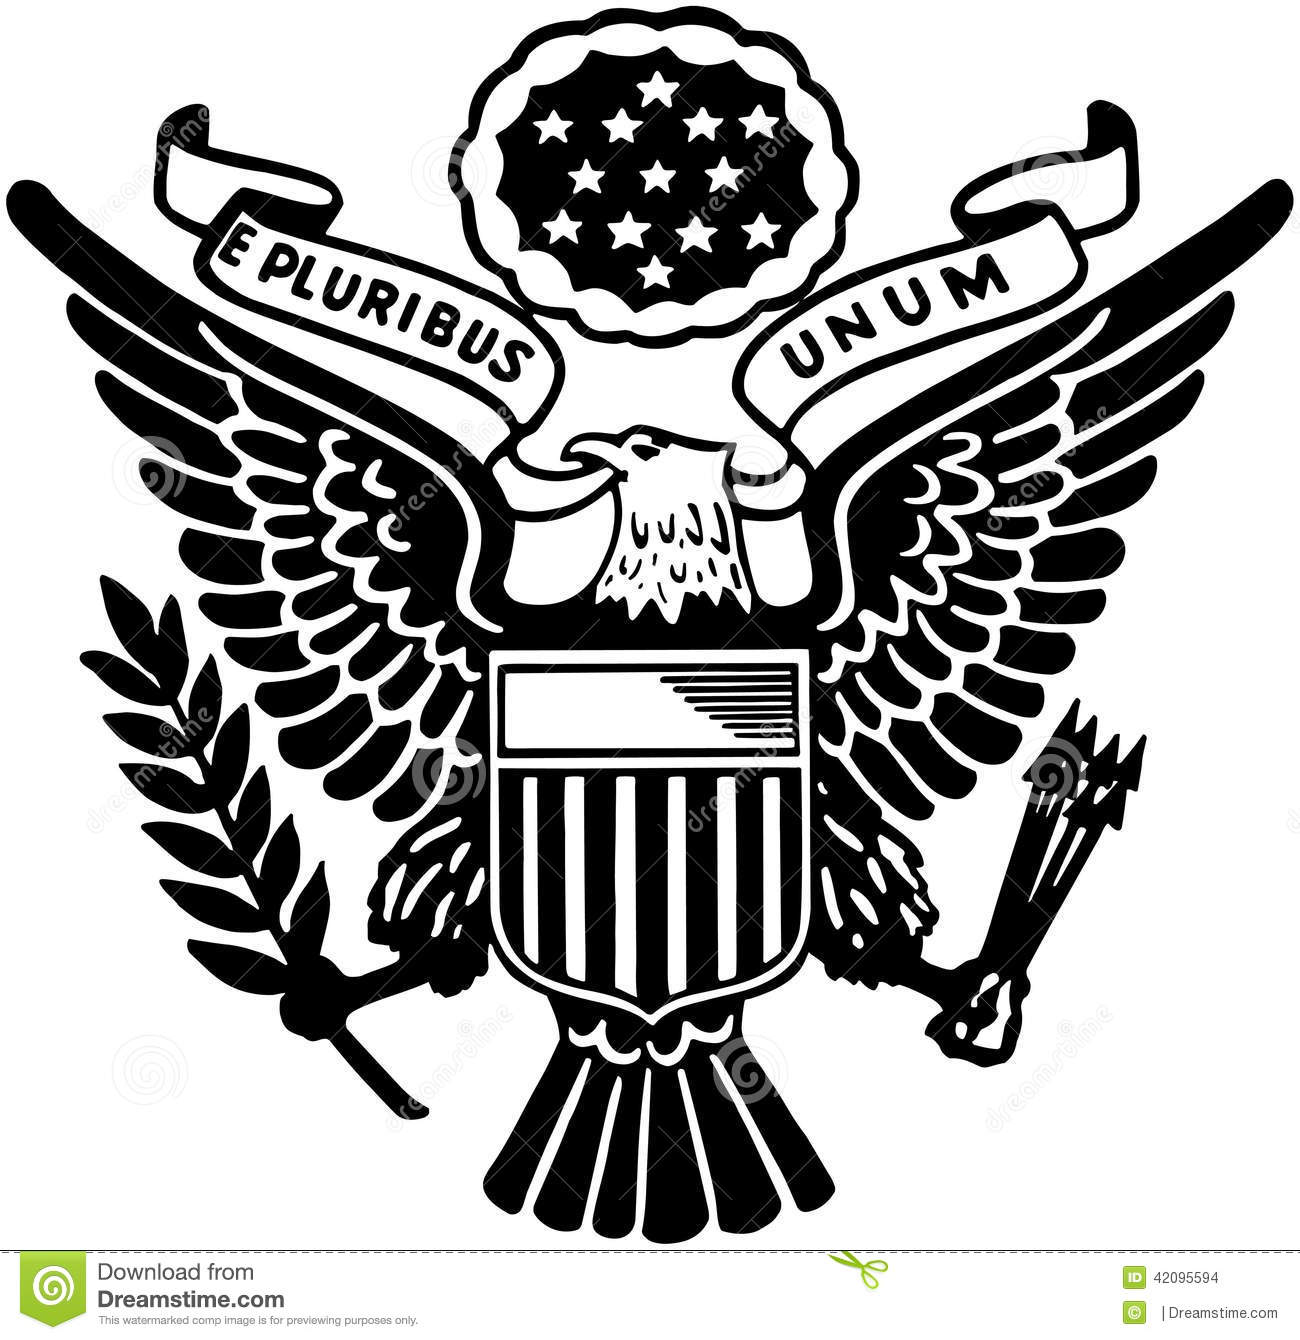 United states eagle clipart jpg black and white library Seal Of The United States Stock Vector - Image: 42095594 jpg black and white library